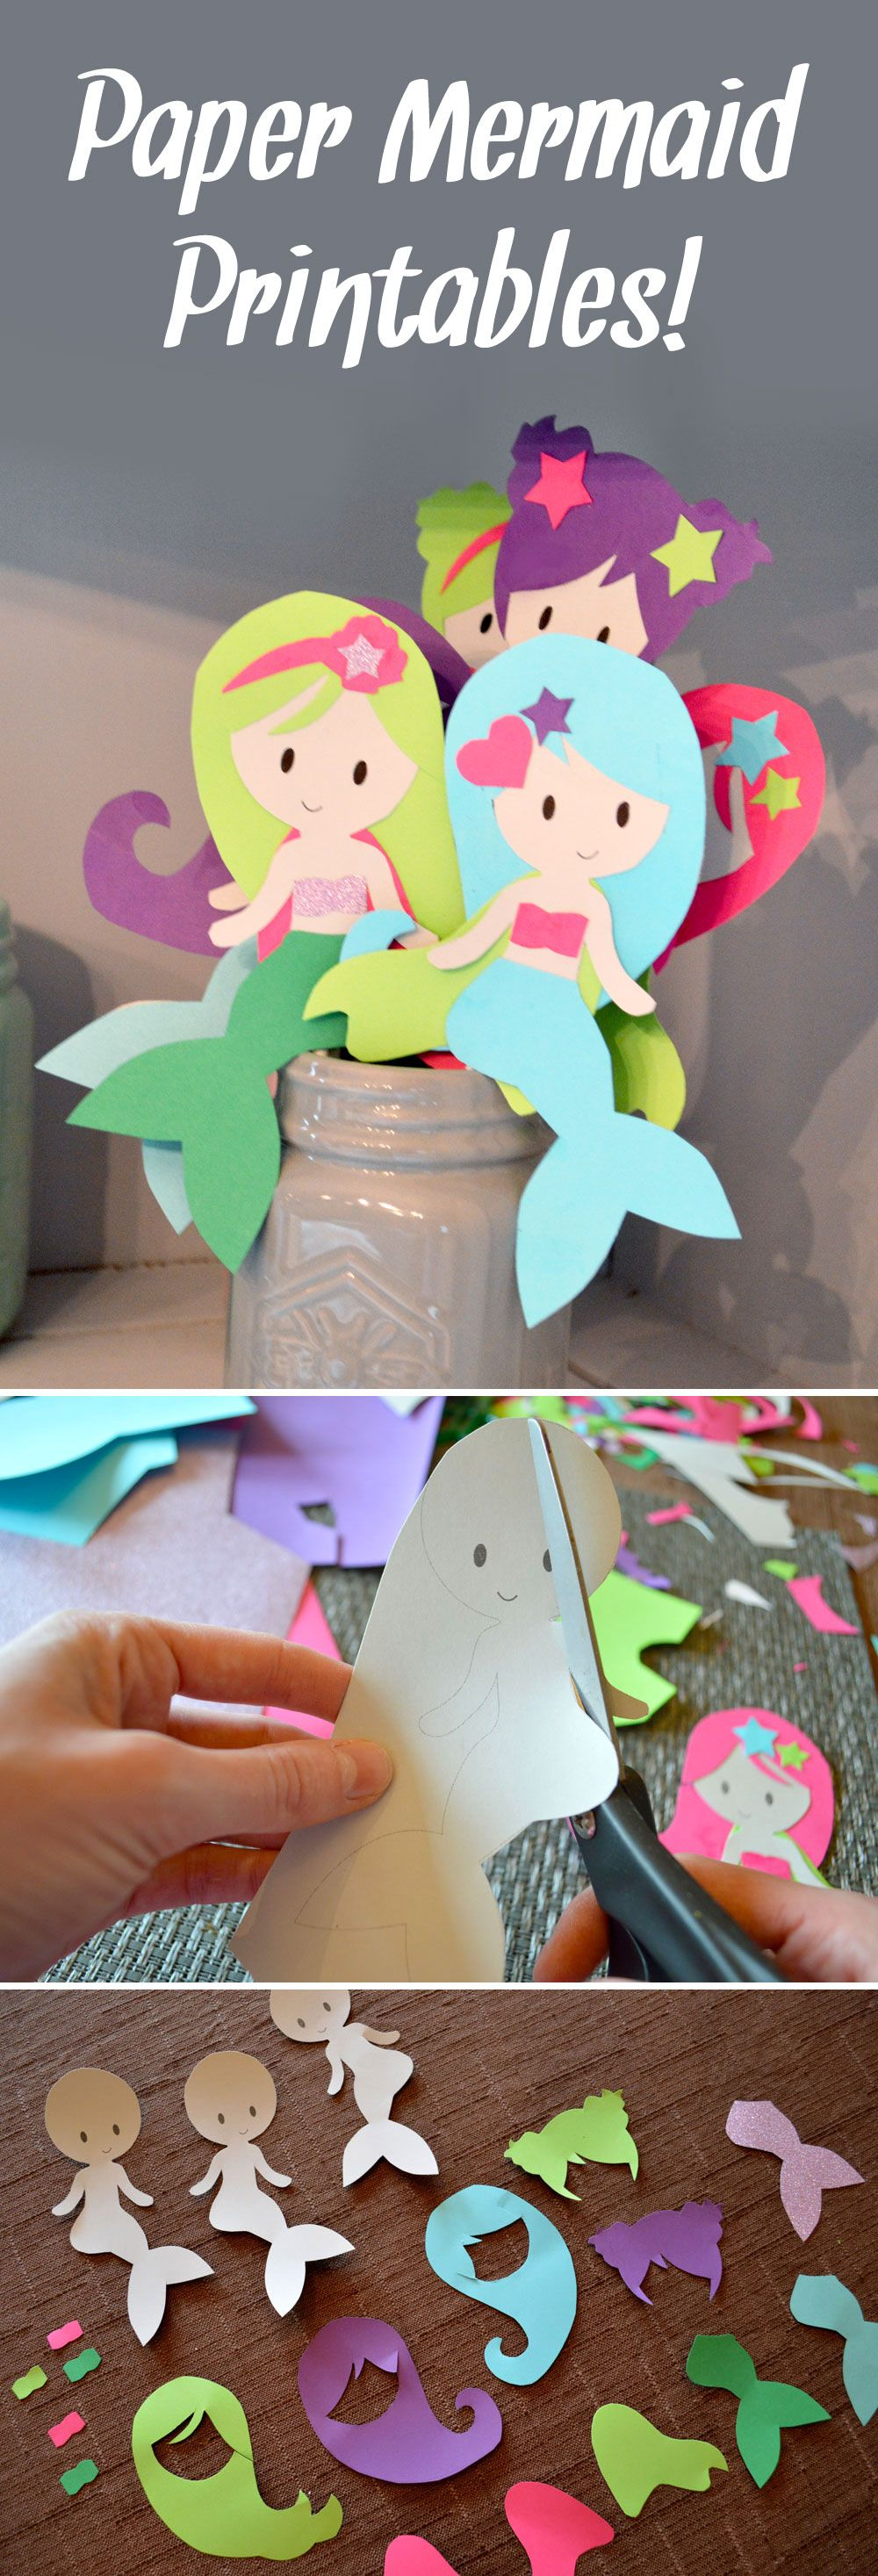 Easily make colorful paper mermaids with our cute printables!